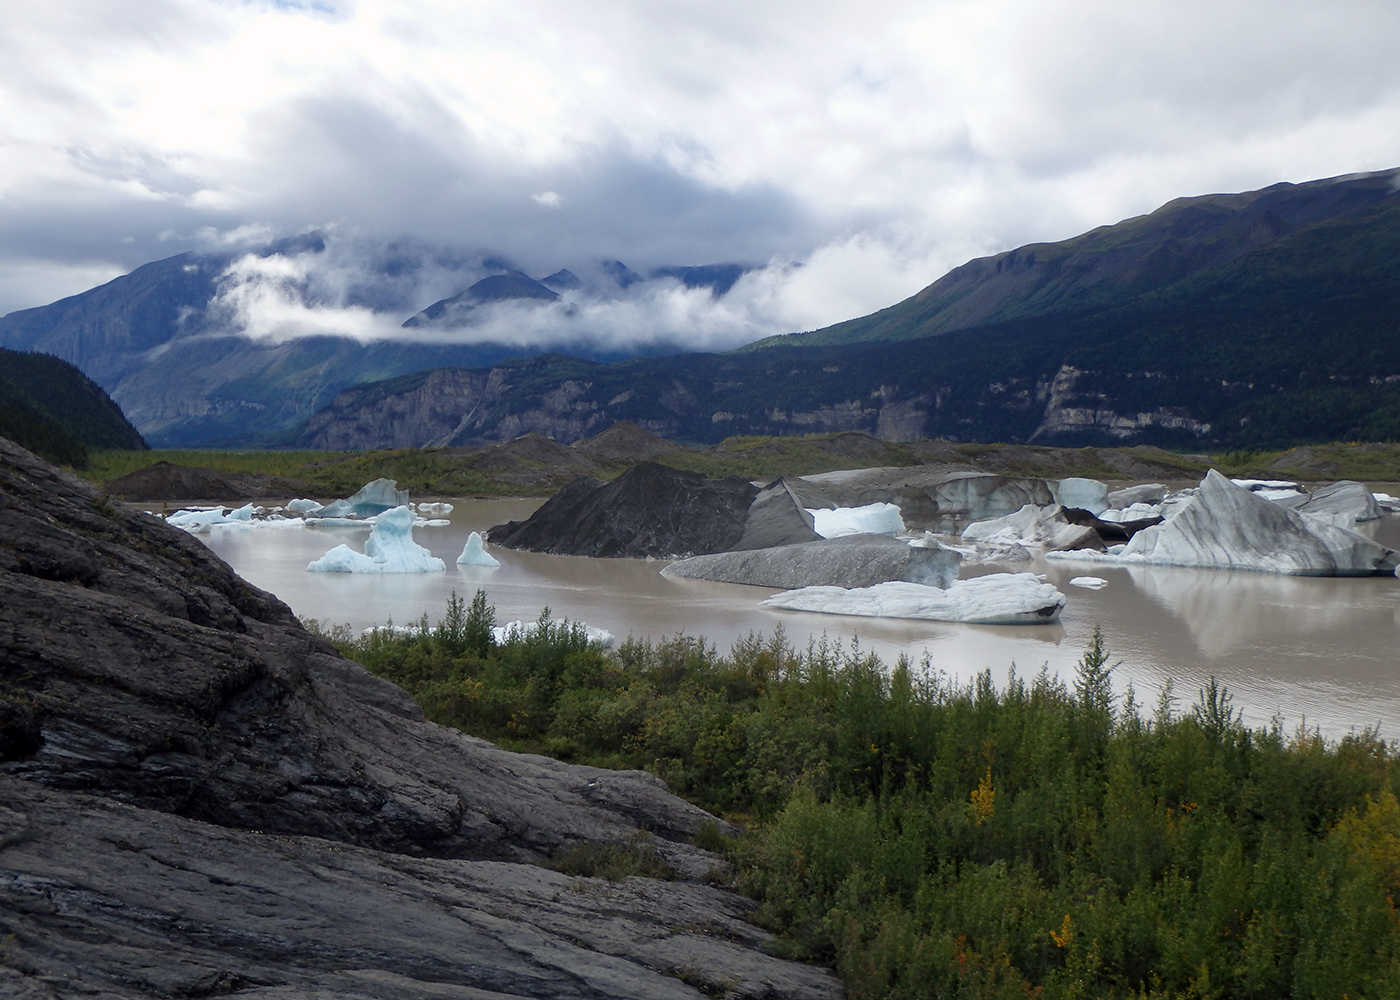 Packrafting And Hiking Wrangell St Elias National Park